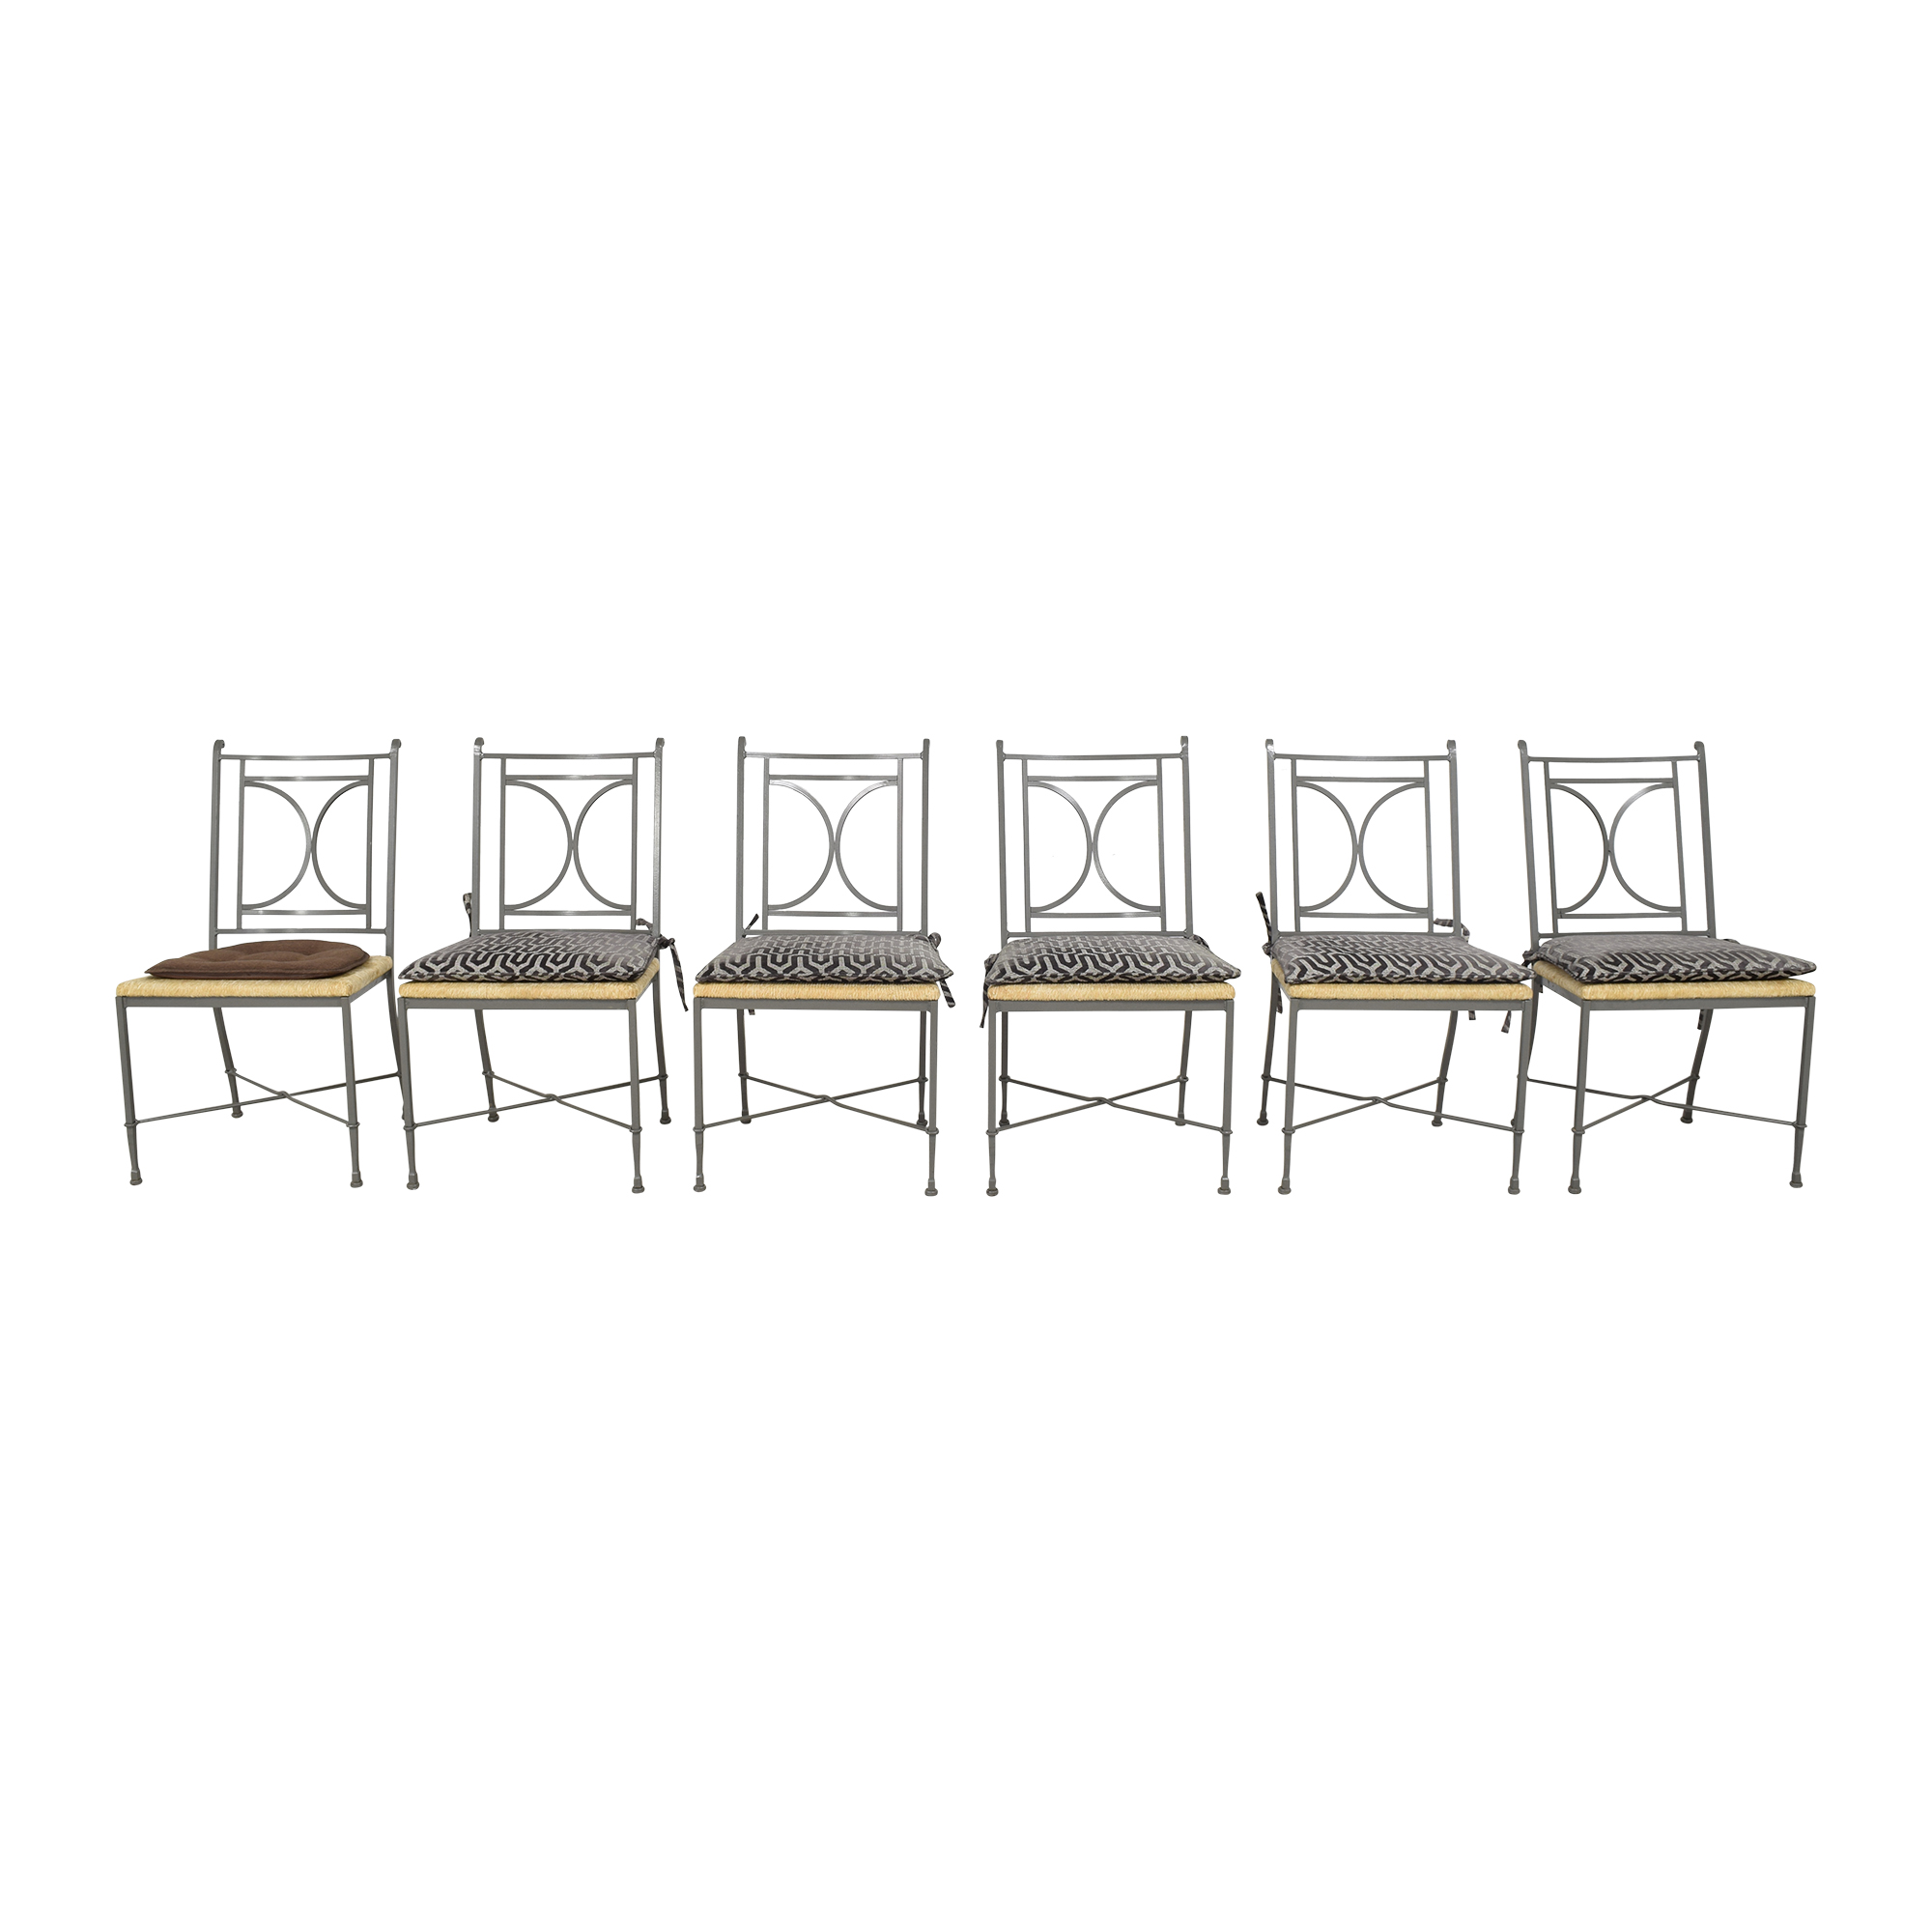 Charleston Forge Charleston Forge Woven Seat Dining Chairs with Cushions Chairs